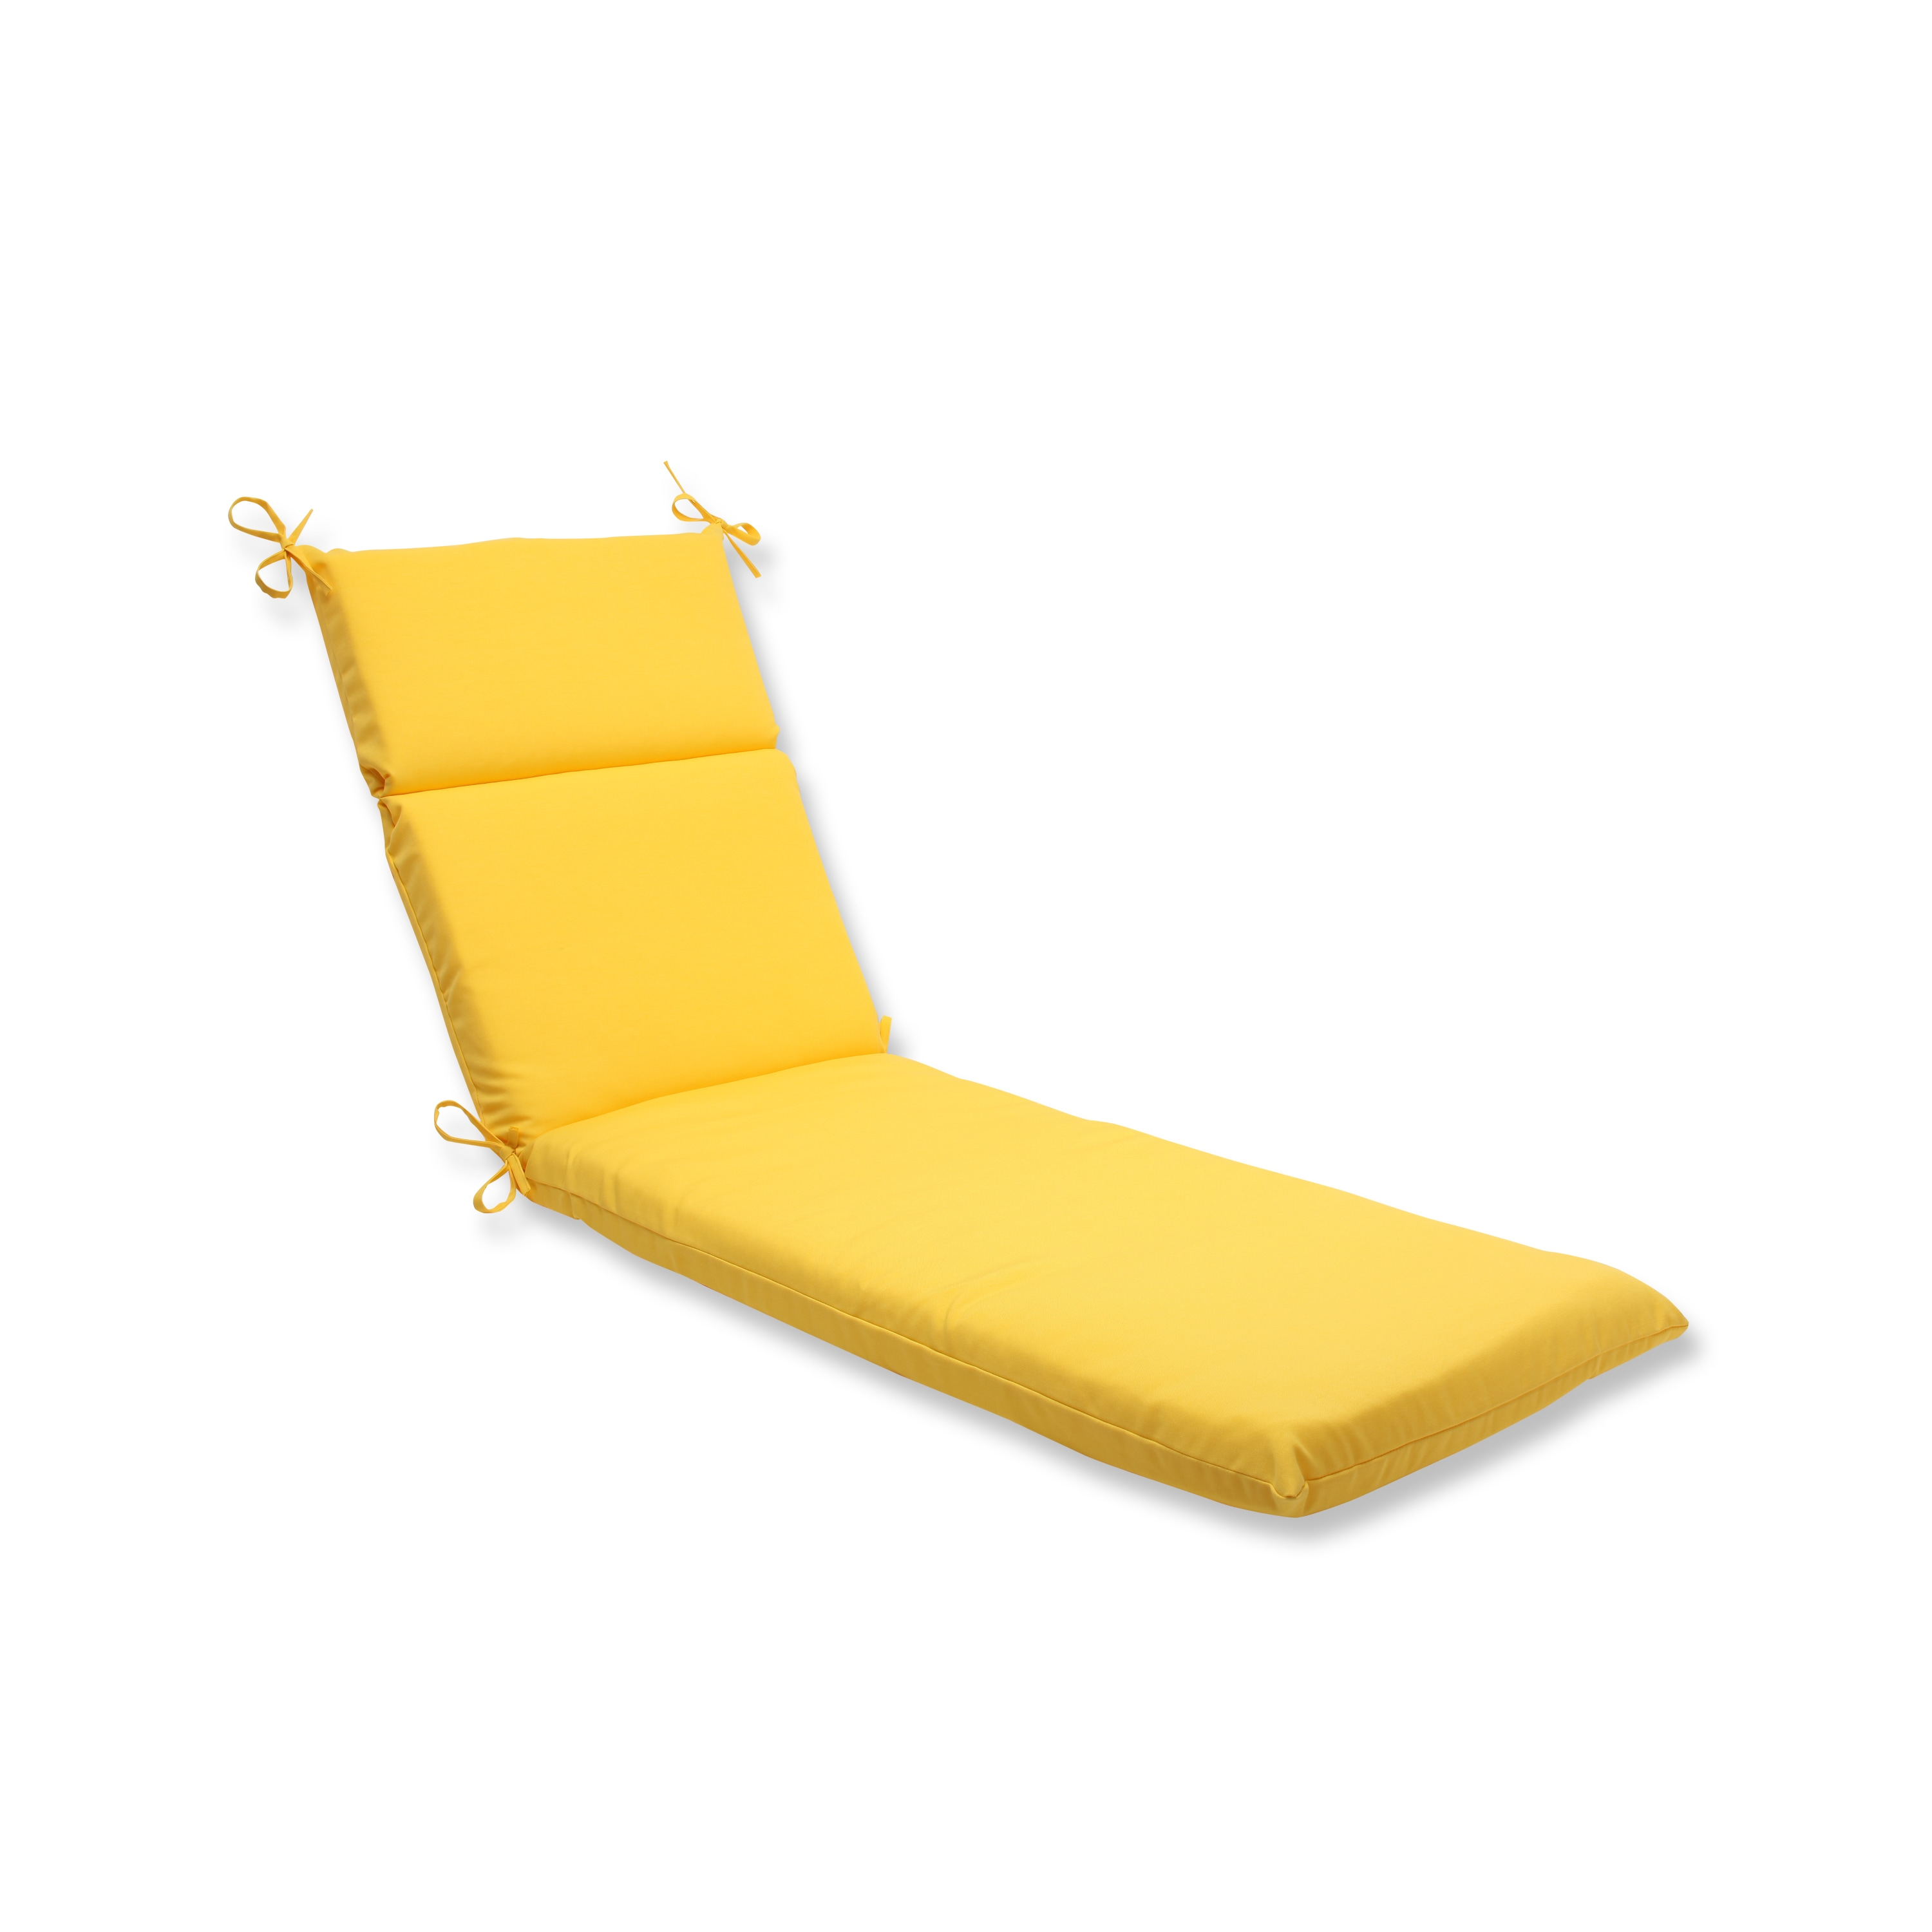 Outdoor Yellow Chaise Lounge Cushion